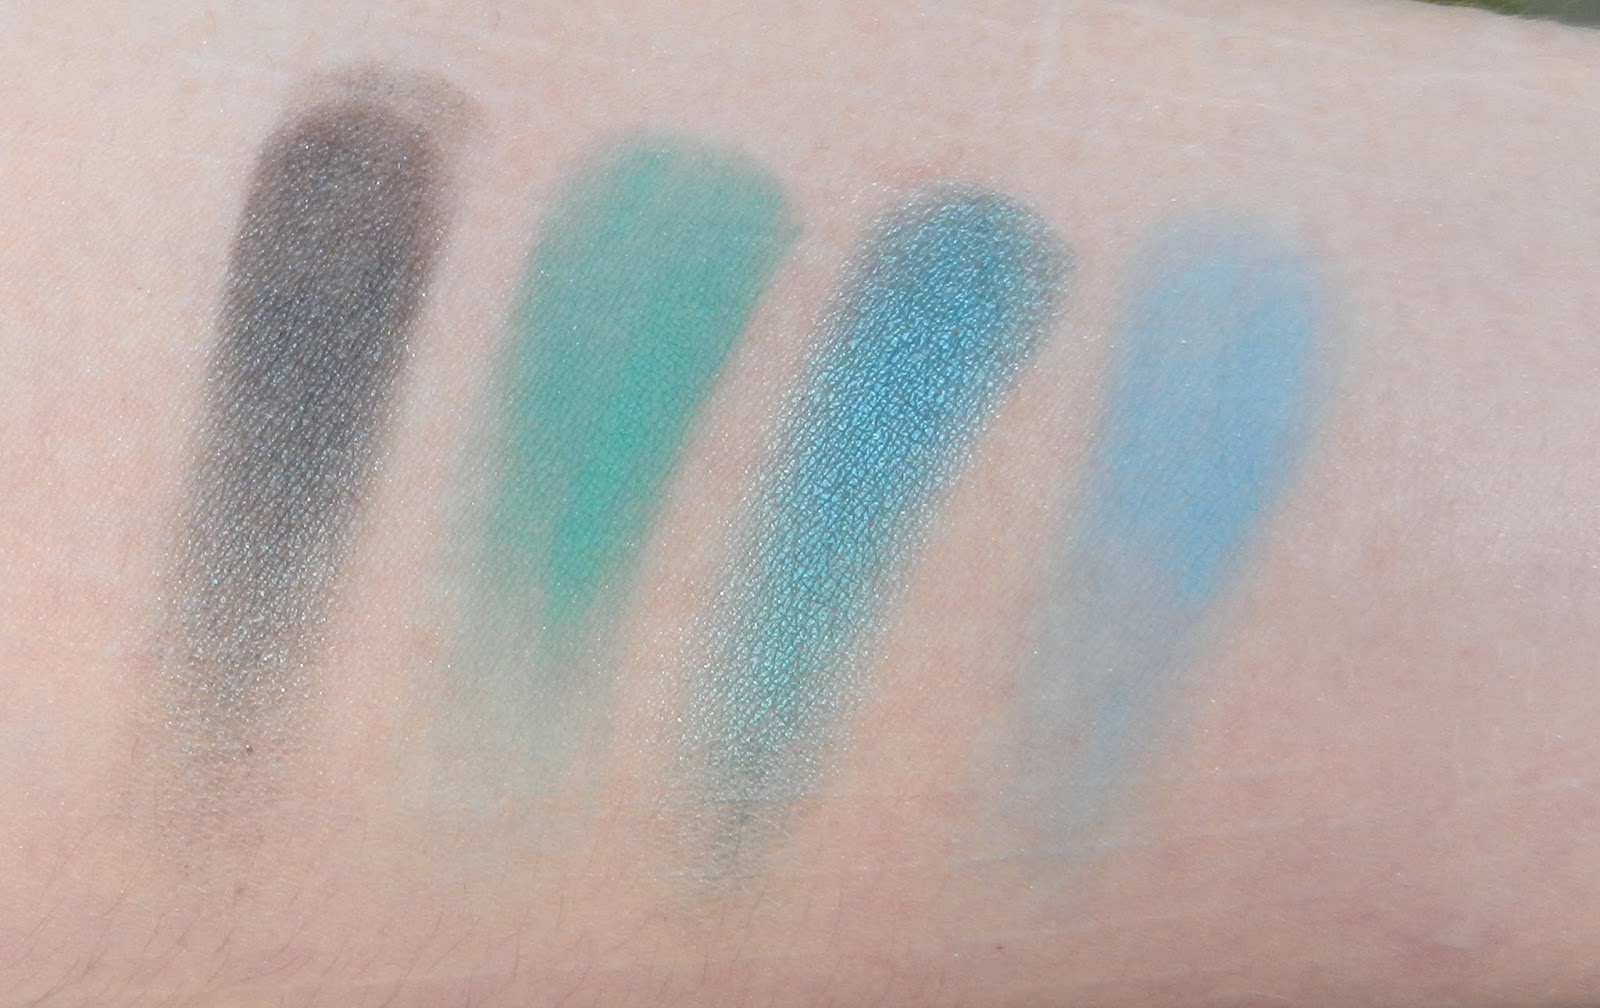 Natasha Denona Blue 28 Swatches 03V Deep Pacific, 84V Powder Blue, 92M Petroleum Blue, 89V Koh Tao